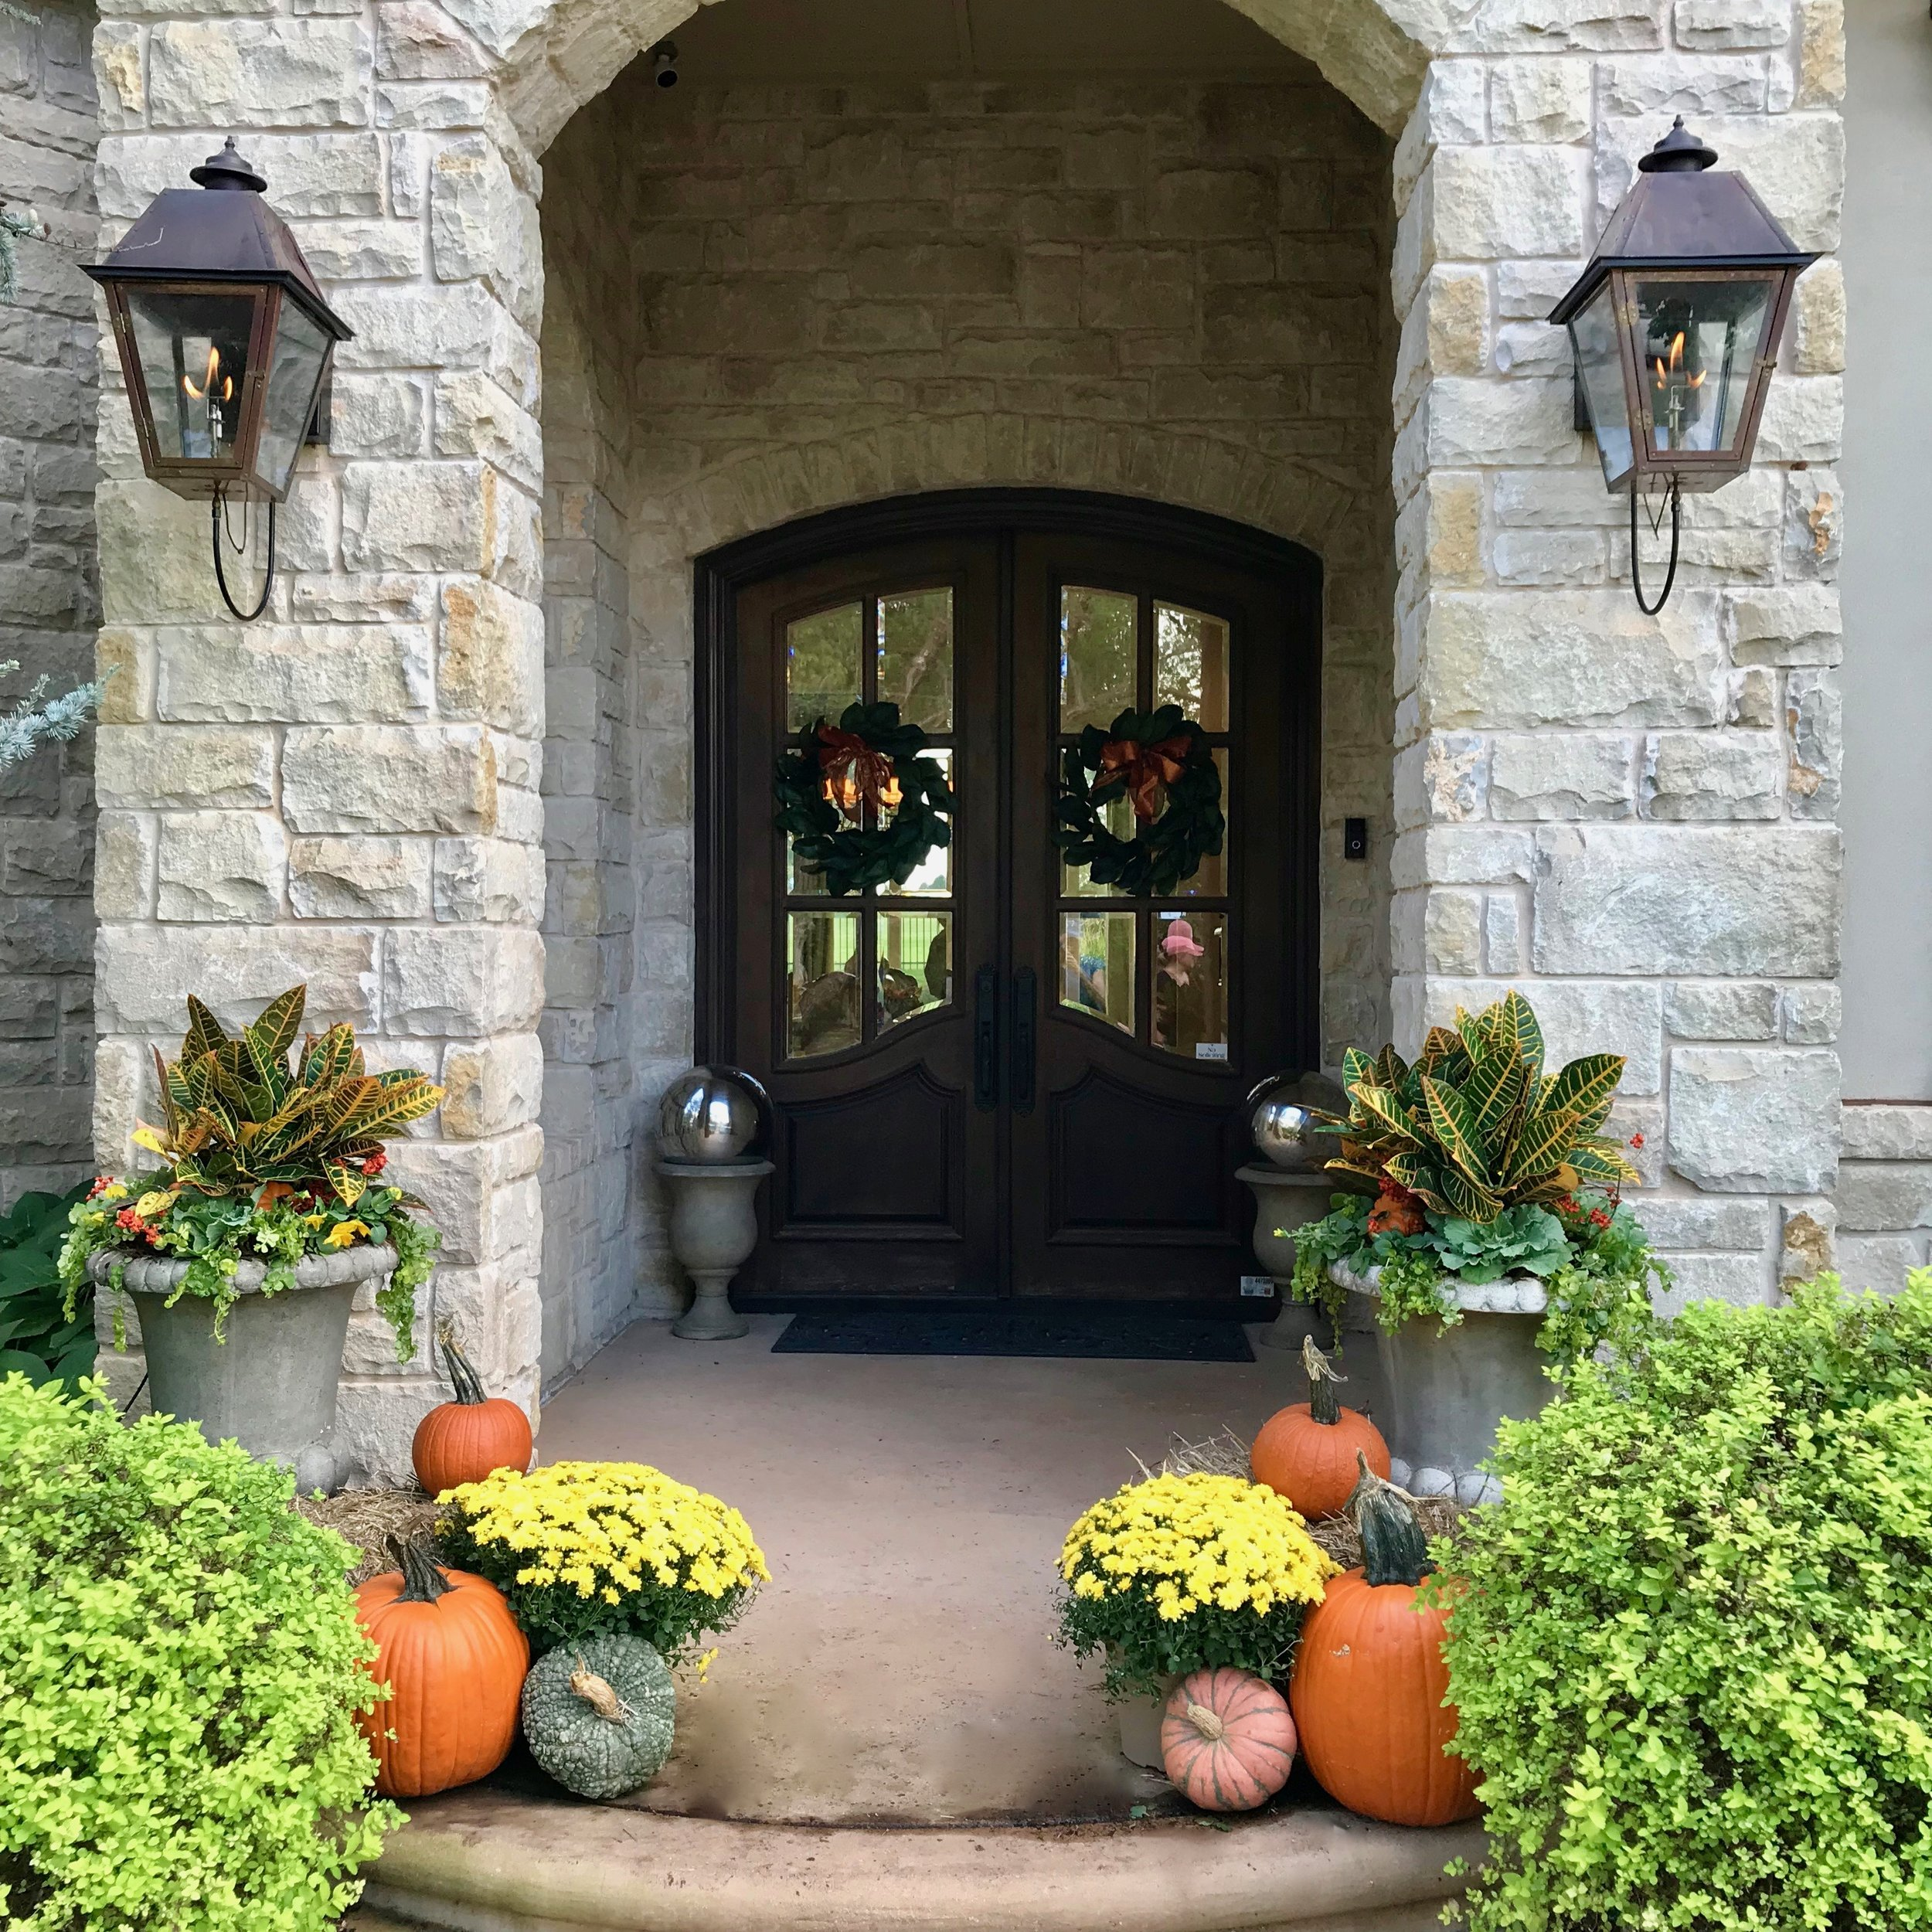 Let Adorn Help You   Who else, besides the Soil Sisters, is excited that fall will officially begin in less than one month? We. Can. Not. Wait.  We love a porch full of pumpkins, gourds, mums, crotons, hay bales, etc. to get the fall vibes going. Can you say instant gratification? It's the perfect seasonal decor to welcome your friends, family and customers to your front door.  We are happy to lend a hand with your fall exterior decorating. Please give us a shout if we can help bring the best of the season to your front porch or storefront.  Make sure to follow Adorn on social media so you don't miss all the good dirt on a daily basis. Click the links below to follow us on Facebook, Instagram and Pinterest.  https://www.facebook.com/adornplanters  https://www.instagram.com/adornplanters https://www.pinterest.com/adornplanters